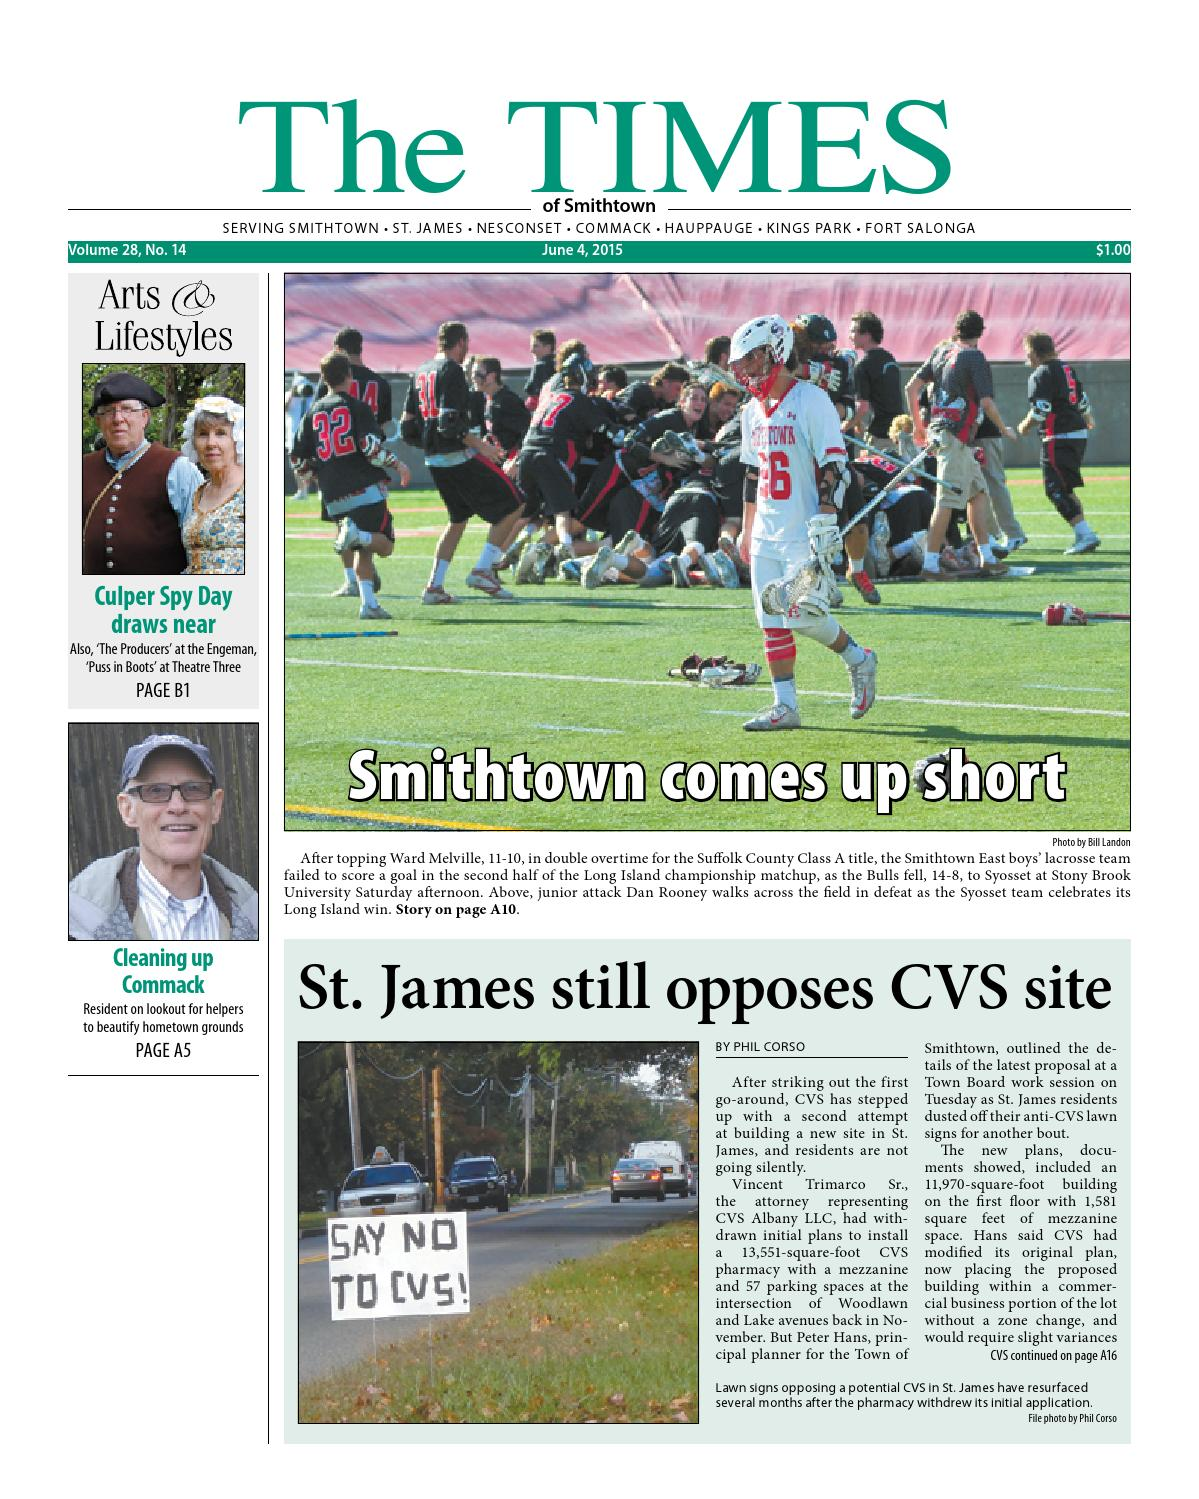 The times of smithtown june 4 2015 by tbr news media issuu fandeluxe Images